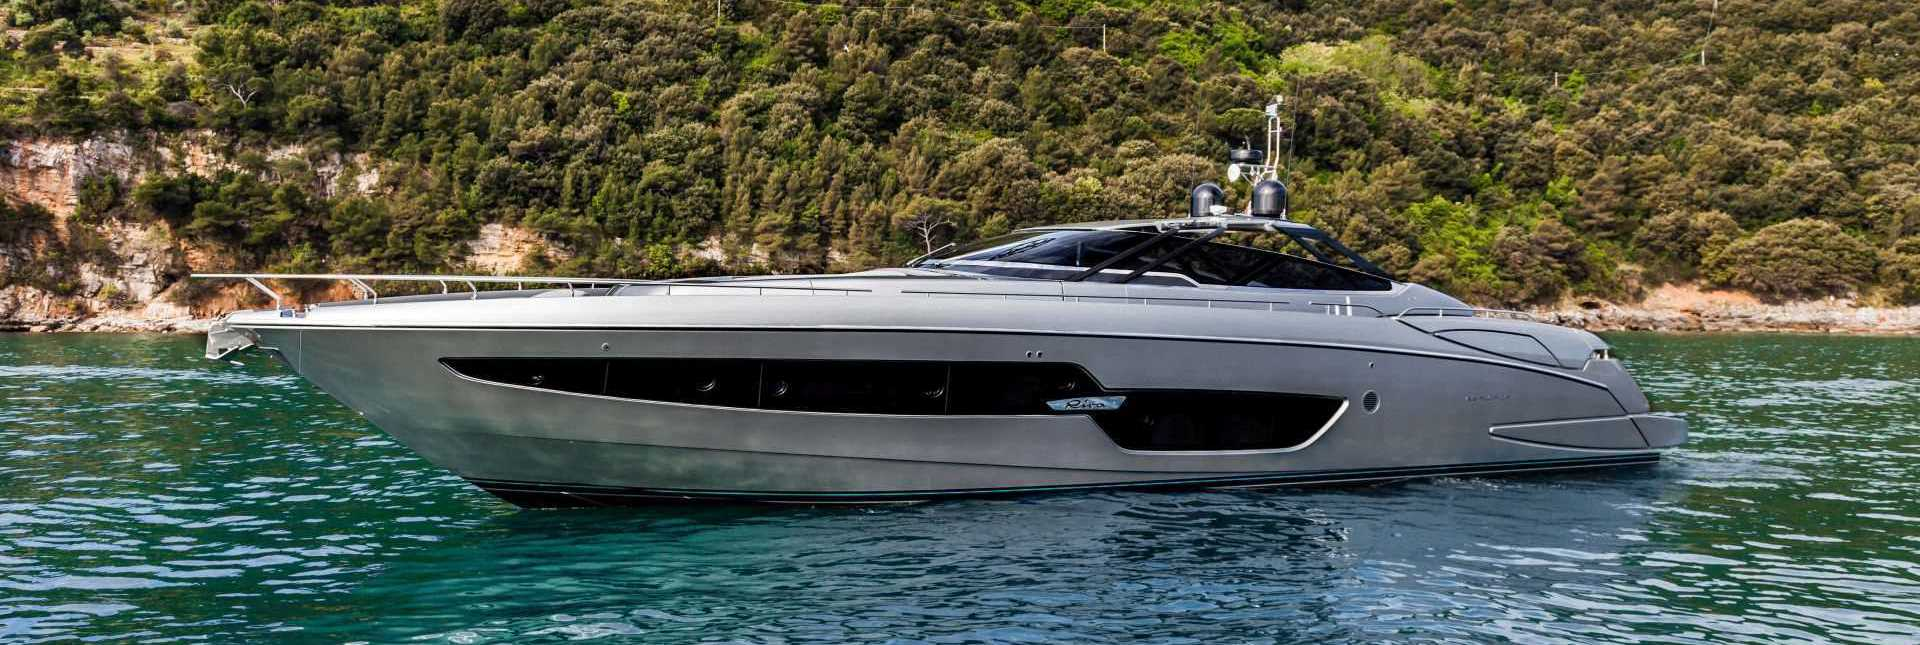 88.1 Ft Riva  88′ Florida